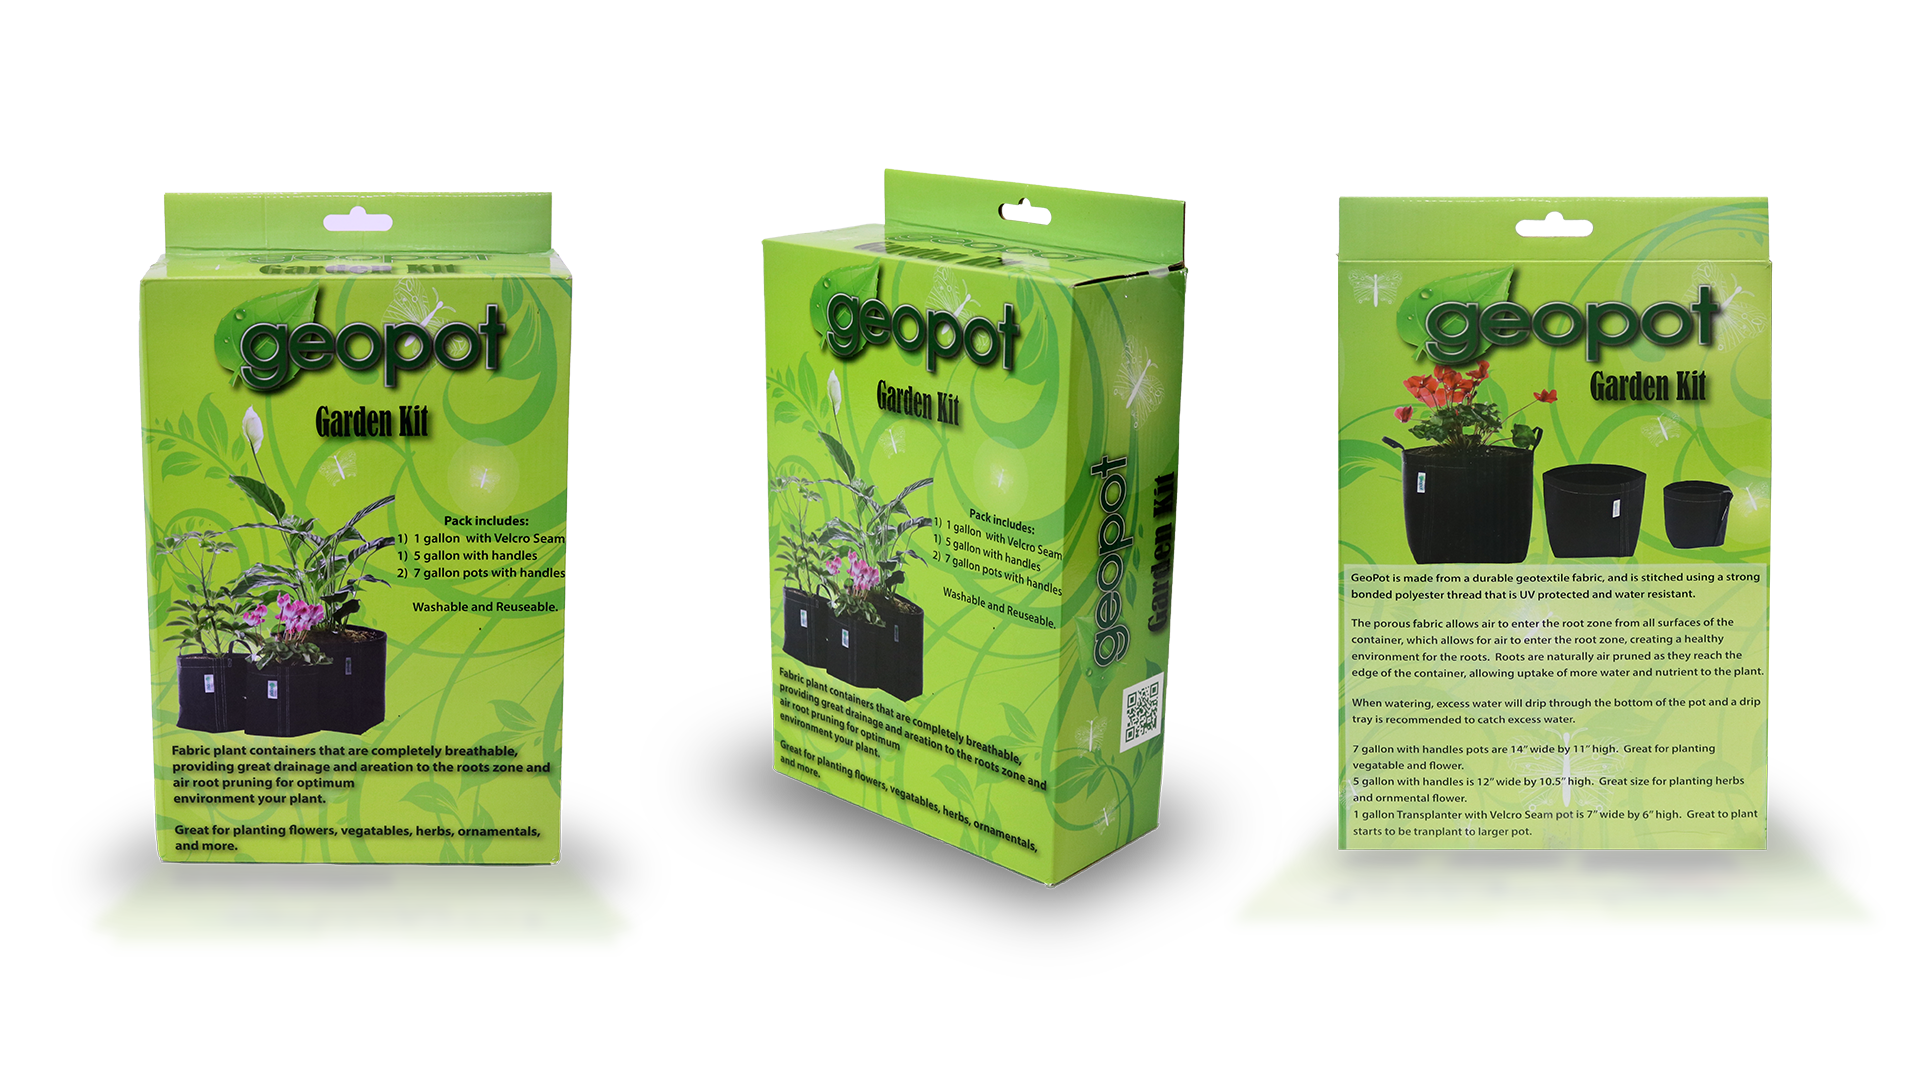 GeoPot Fabric Pot Garden Kit - GeoPot - Geopot.com